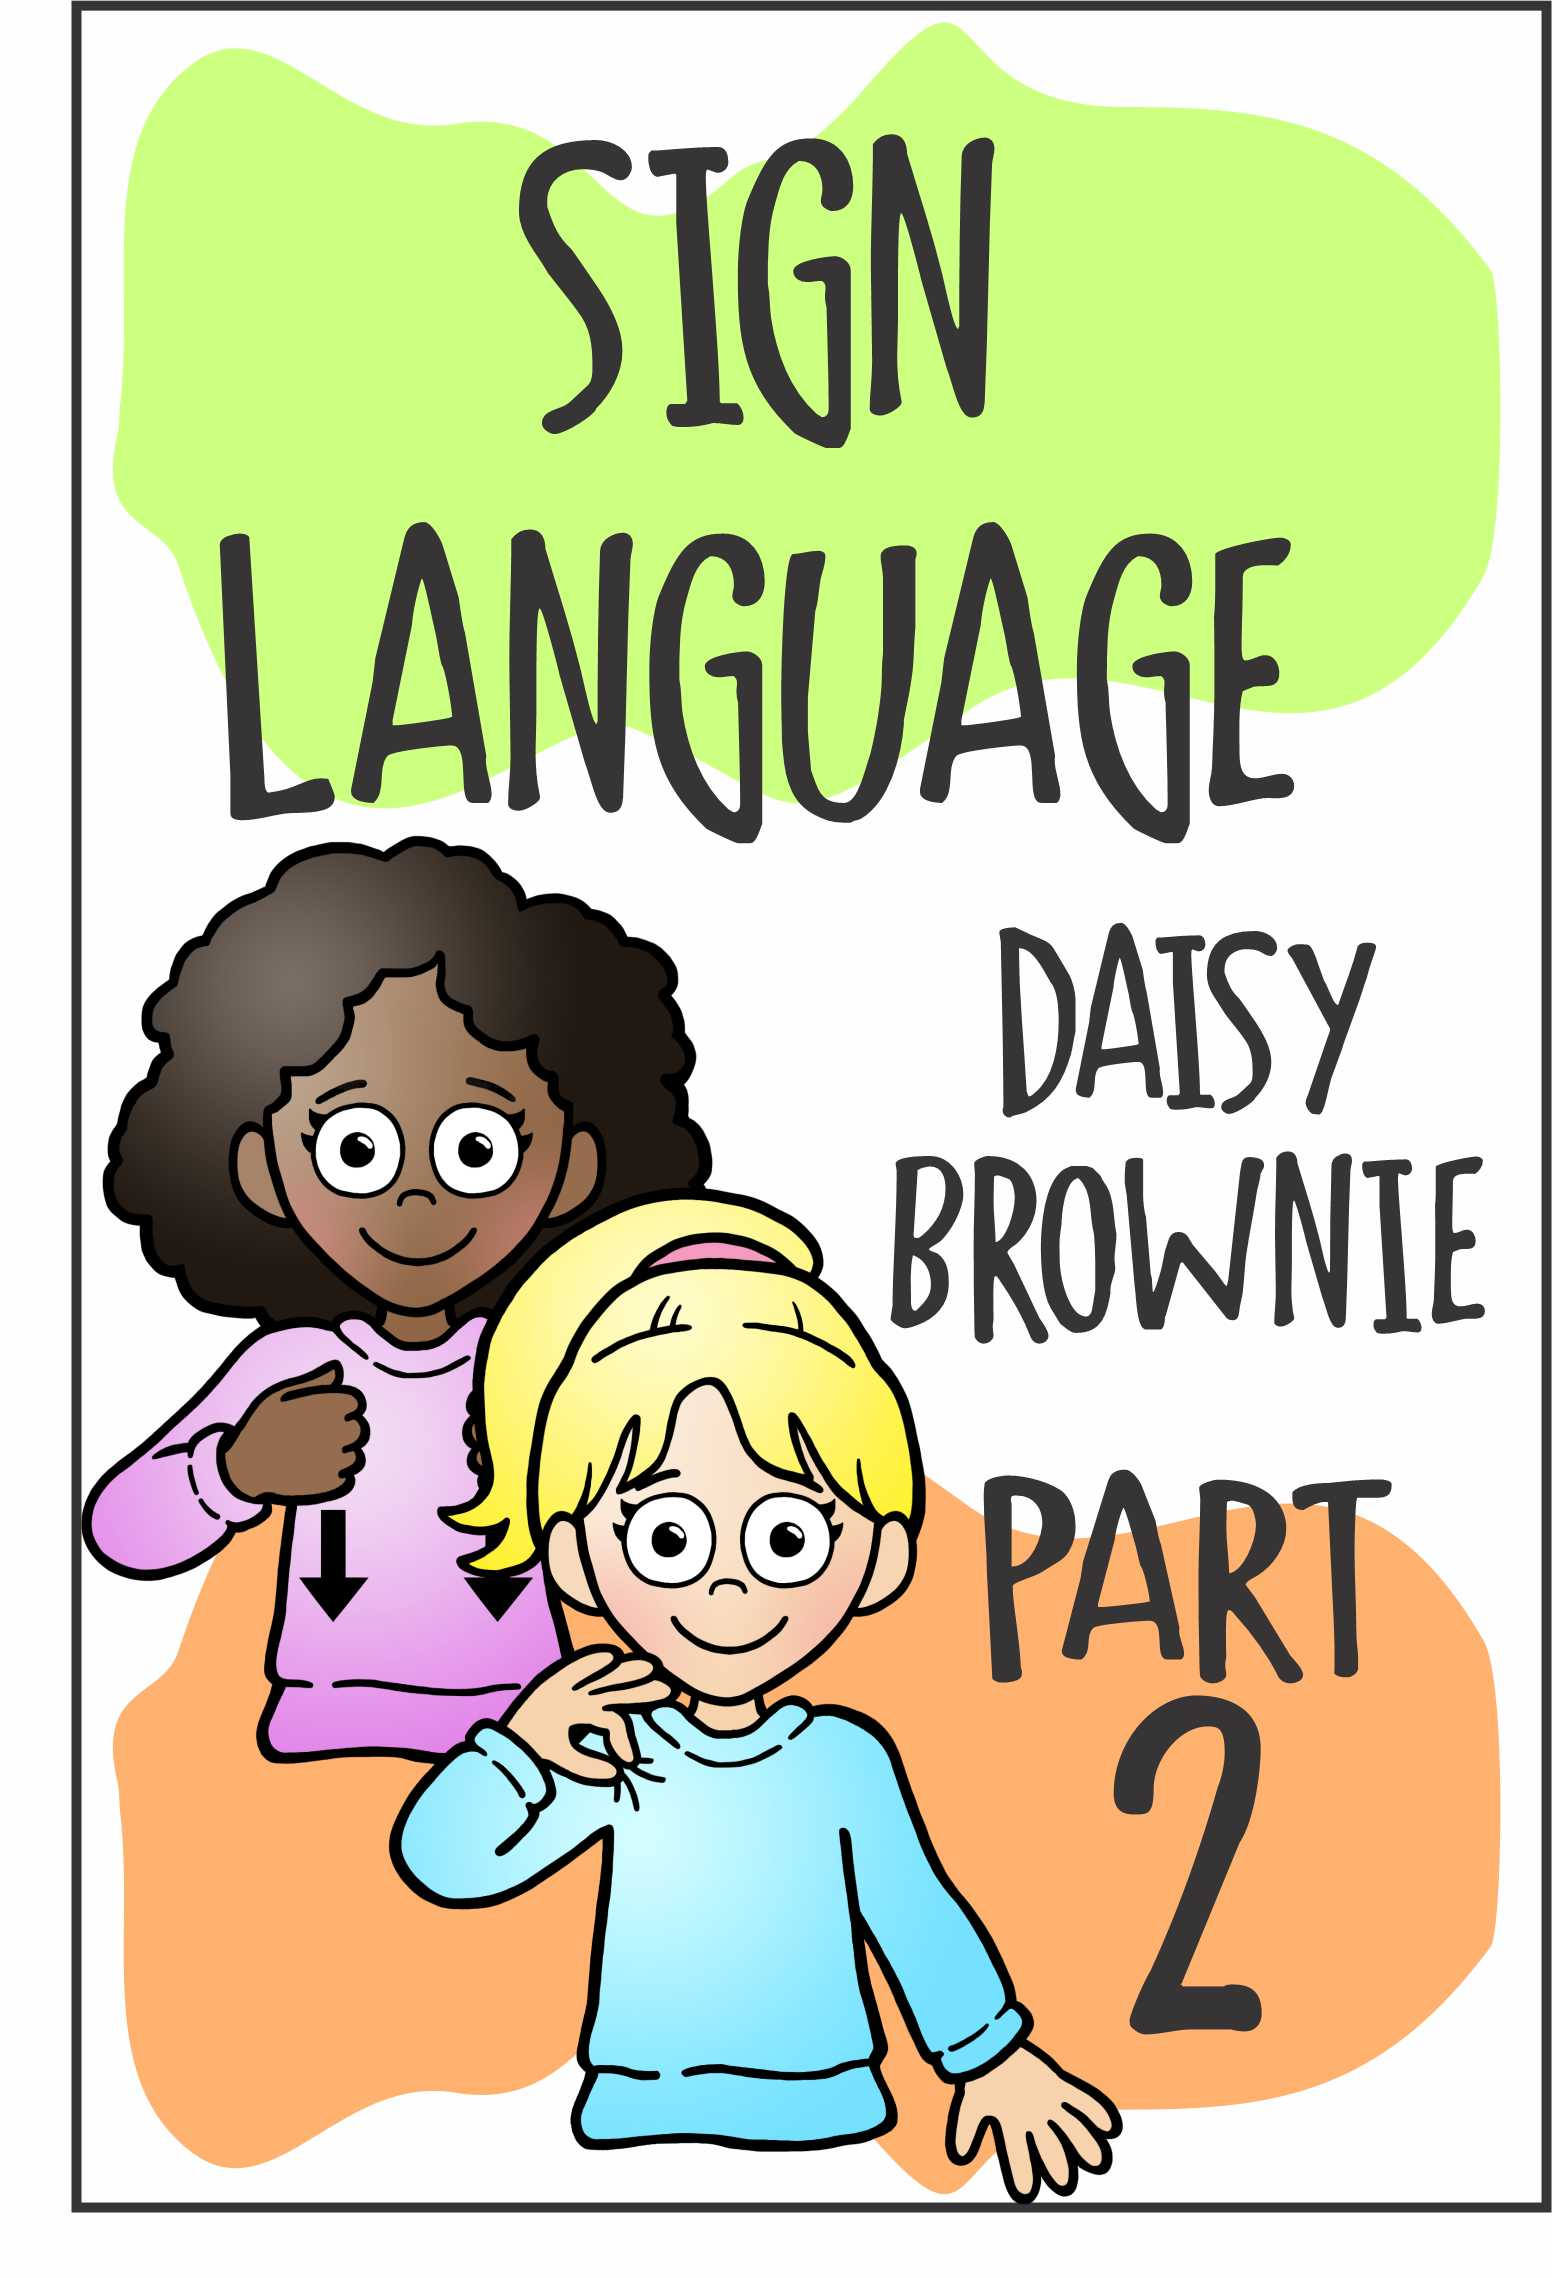 Join us for our Part 2 Sign Language Workshop for Daisies and Brownies! Part 2 is all about Food, Fun, and Family! #makingfriends #signlanguage #asl #signs #virtualworkshop #daisies #brownies #girlscouts #gsfunpatch via @gsleader411